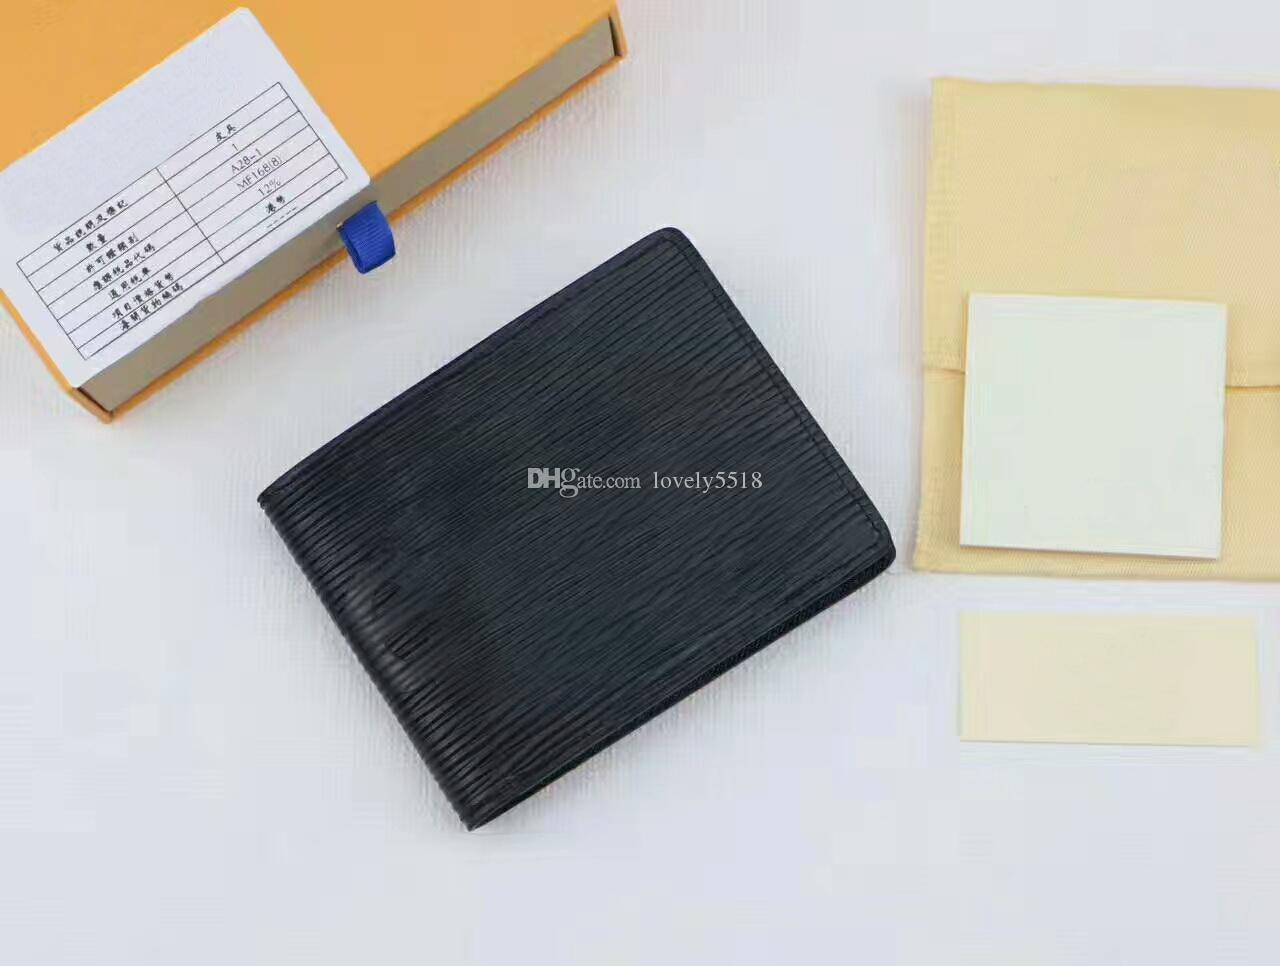 Women/Men Card Holder Purses High quality Box logo Famous Brand Genuine Leather Short Water Ripple wallets With Box dust bags C#8 For black